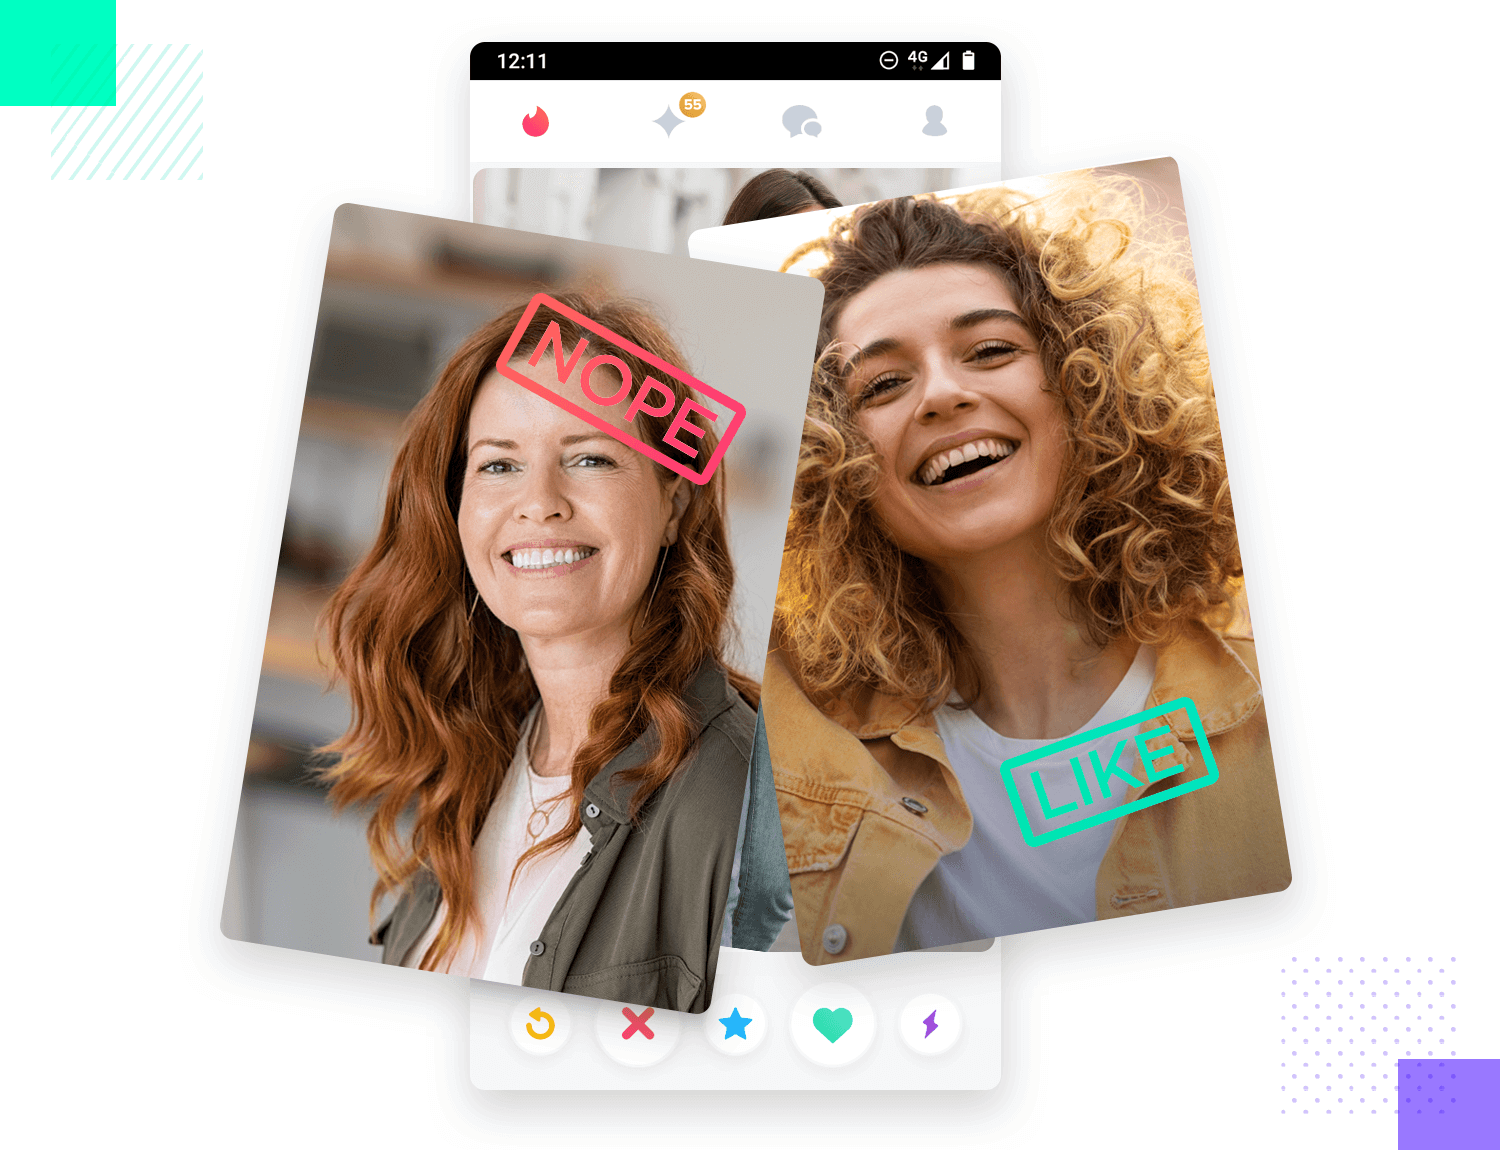 example of gesture navigation on tinder mobile app